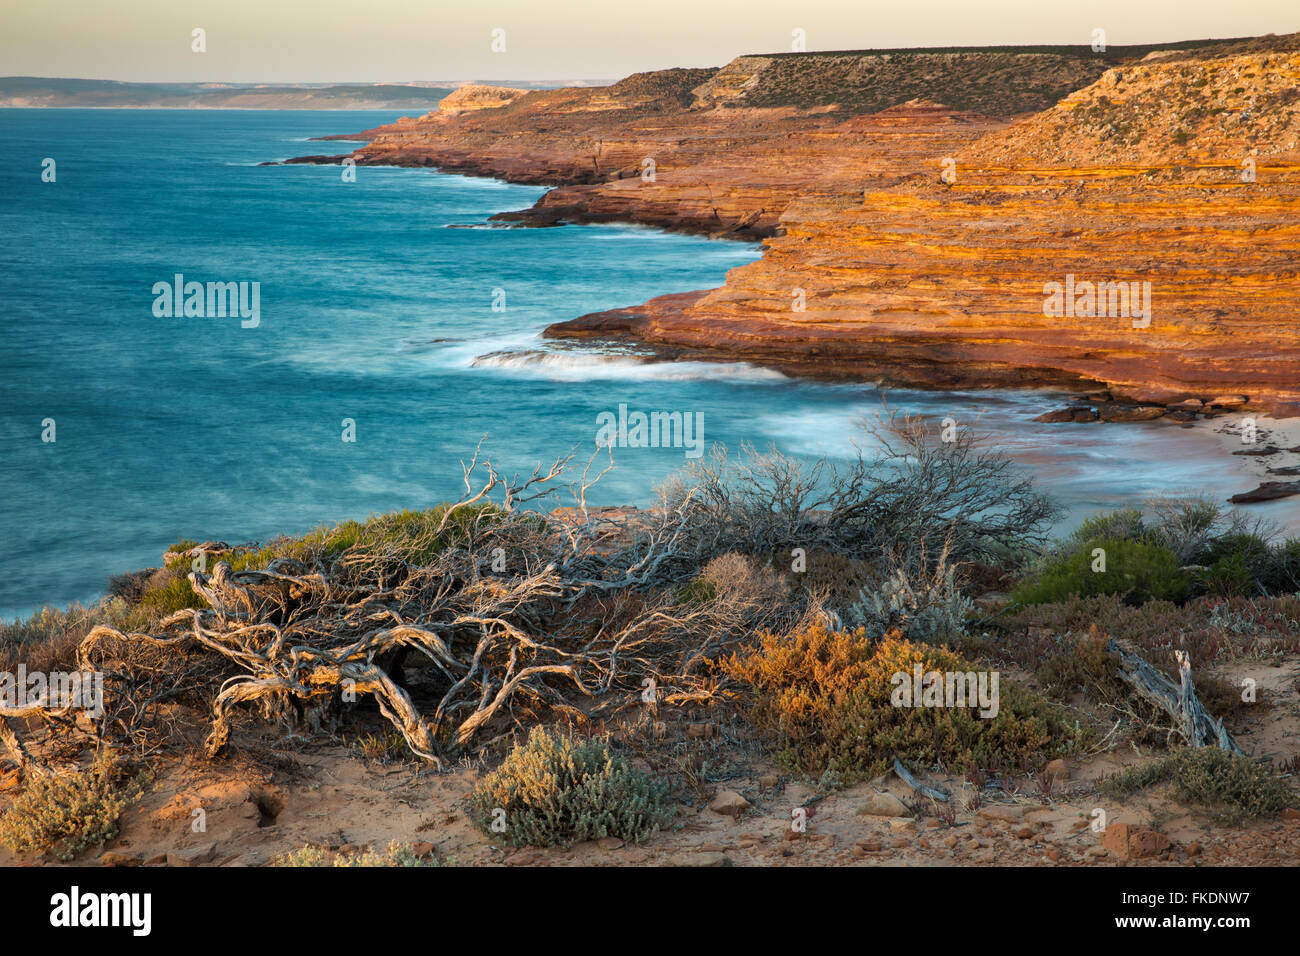 Gantheaume Bay from the Eagle lookout, Kalbarri National Park, Western Australia - Stock Image